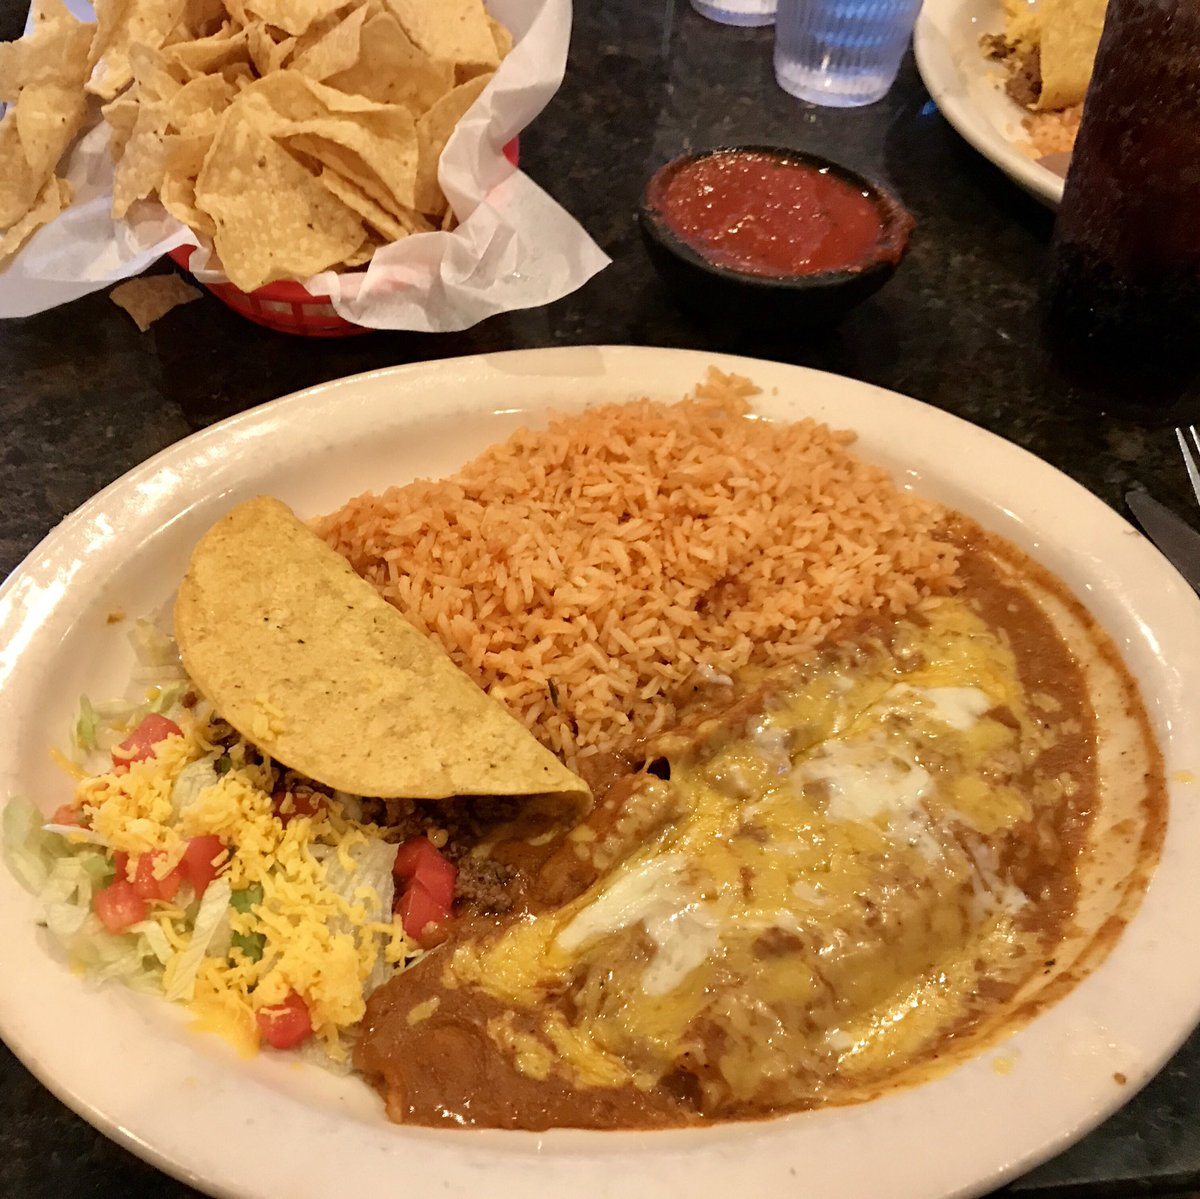 Tex-Mex 3 times in 5 days.  Damn I miss this in Oregon.  Back home tonight. https://t.co/xykFjNZ8Pe